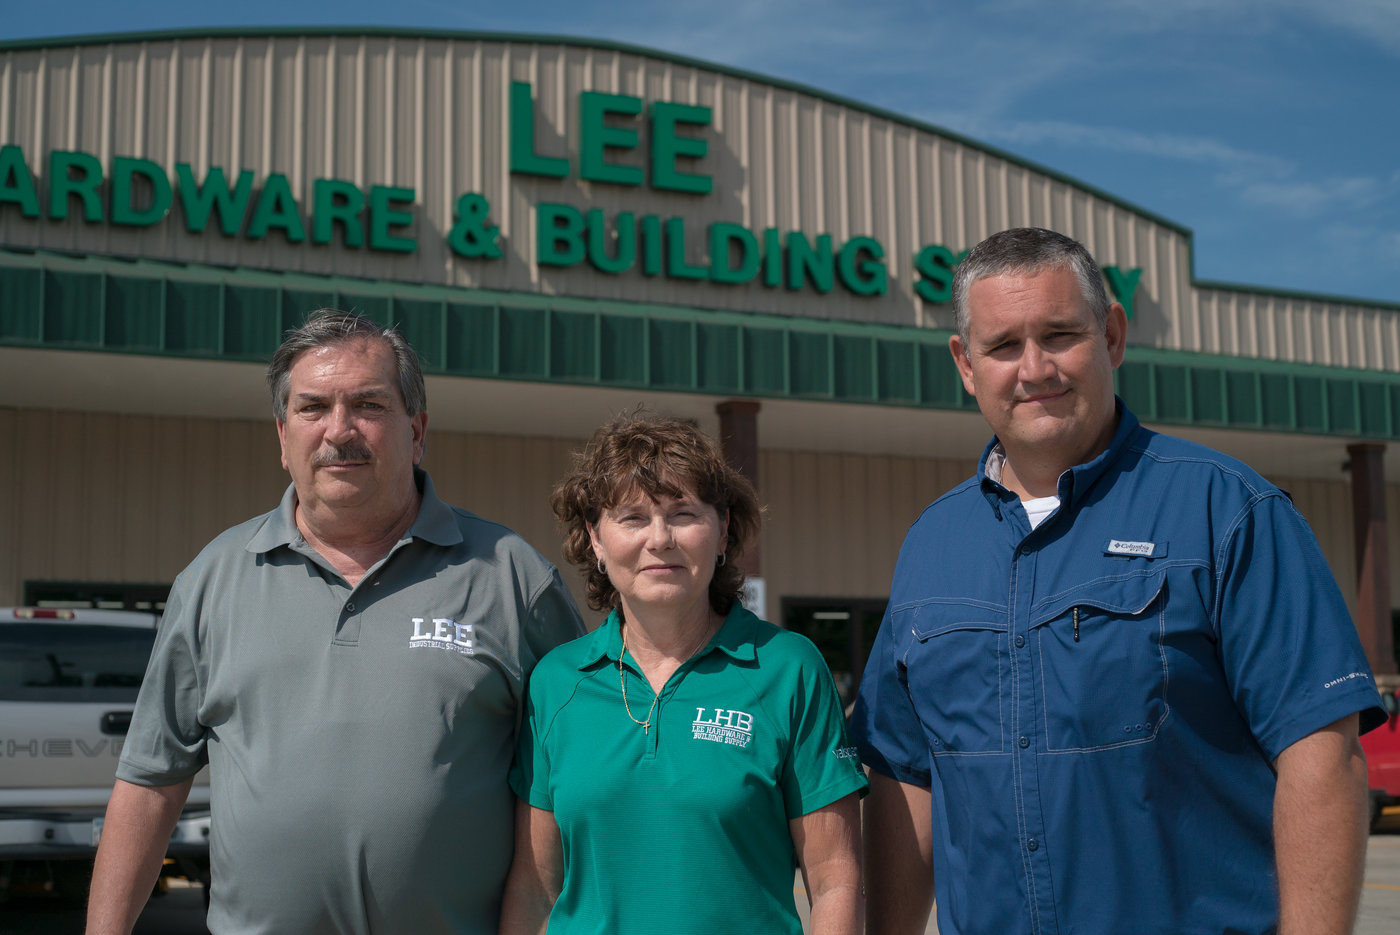 Richard Lee, Denise Lee and Jamie Bruner are proud of the new, larger Lee Hardware & Building Supply in Waycross, Ga.